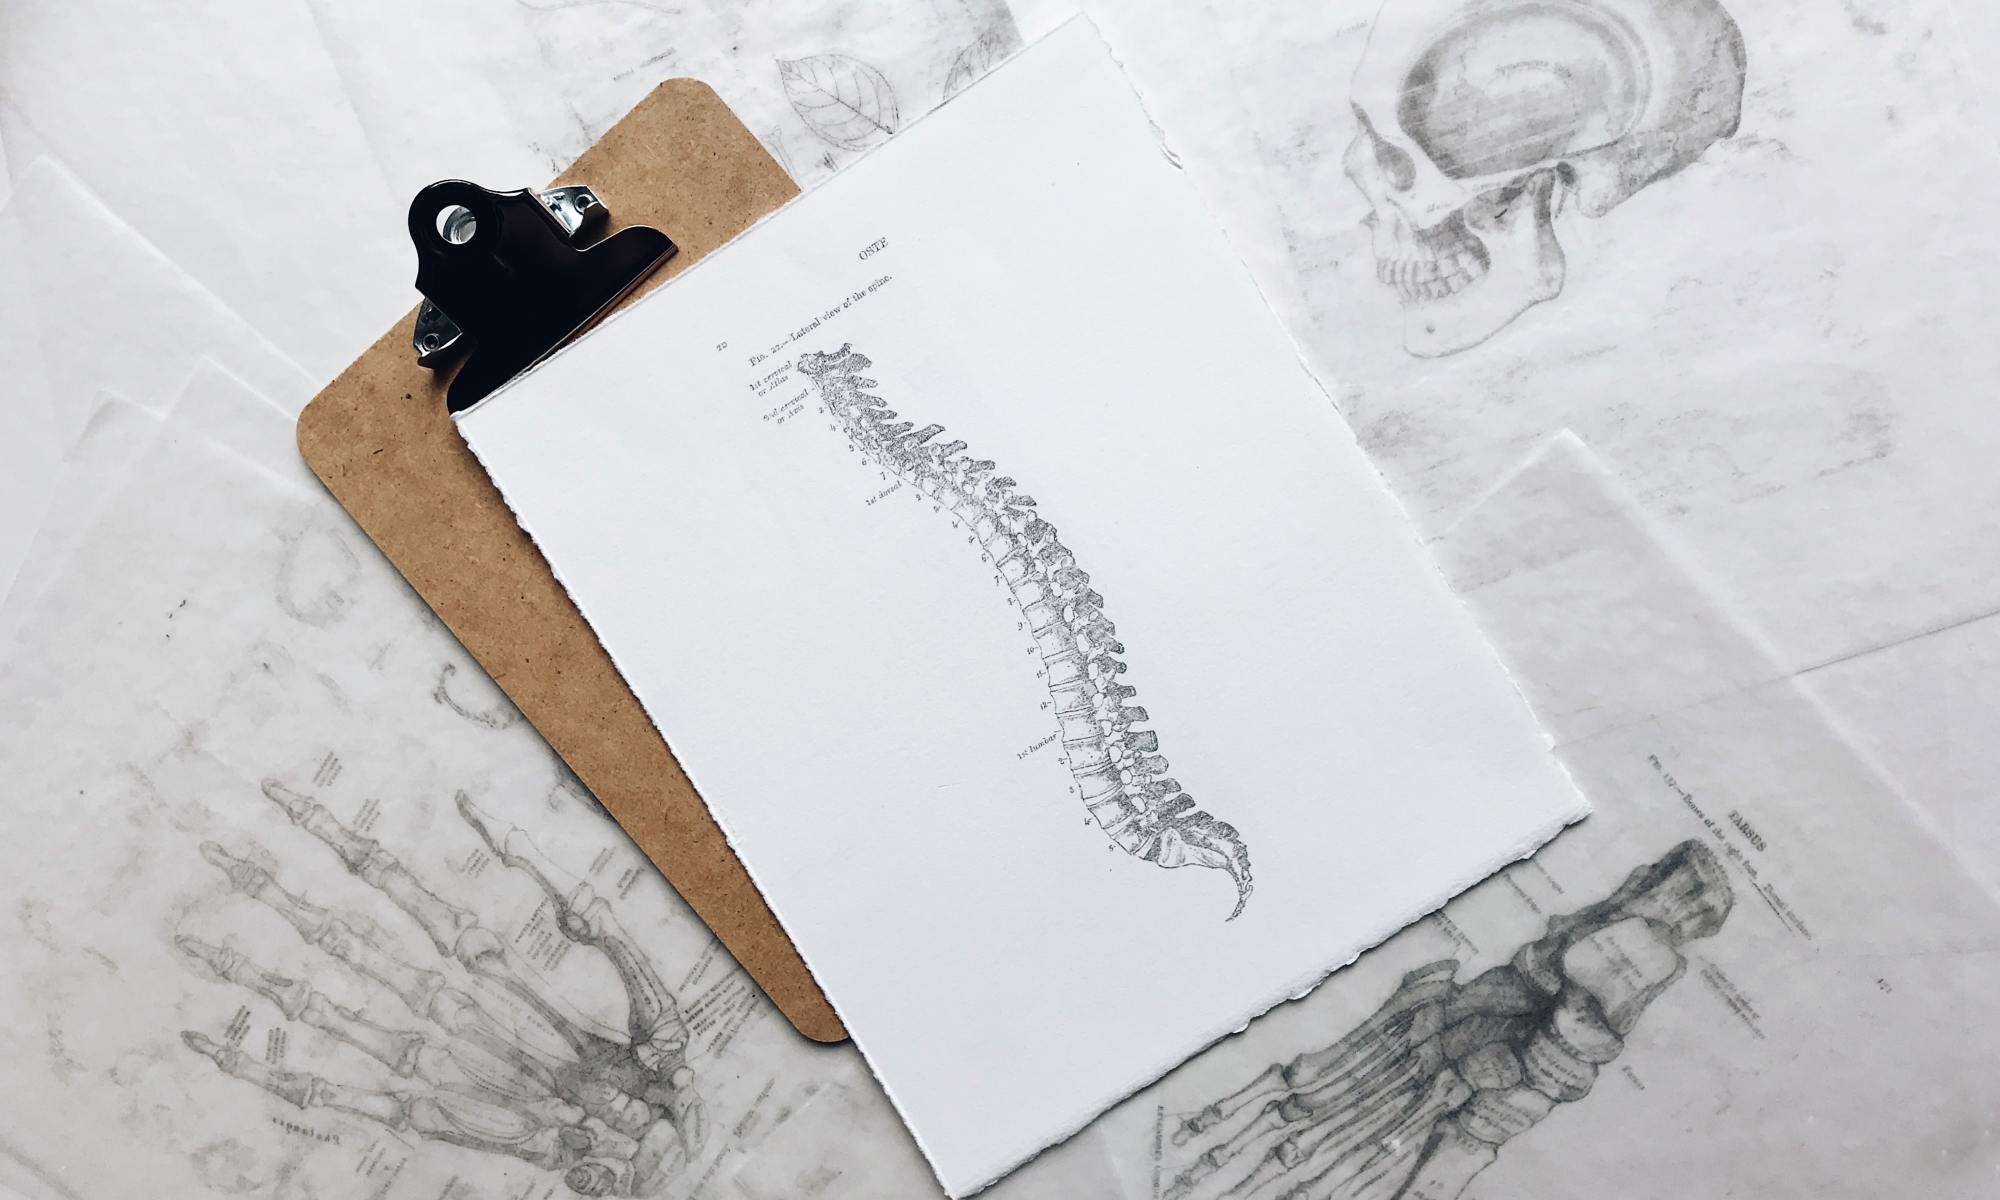 Clipboard with multiple pieces of paper of medical drawings - a labeled spine, foot, hand, and skull.